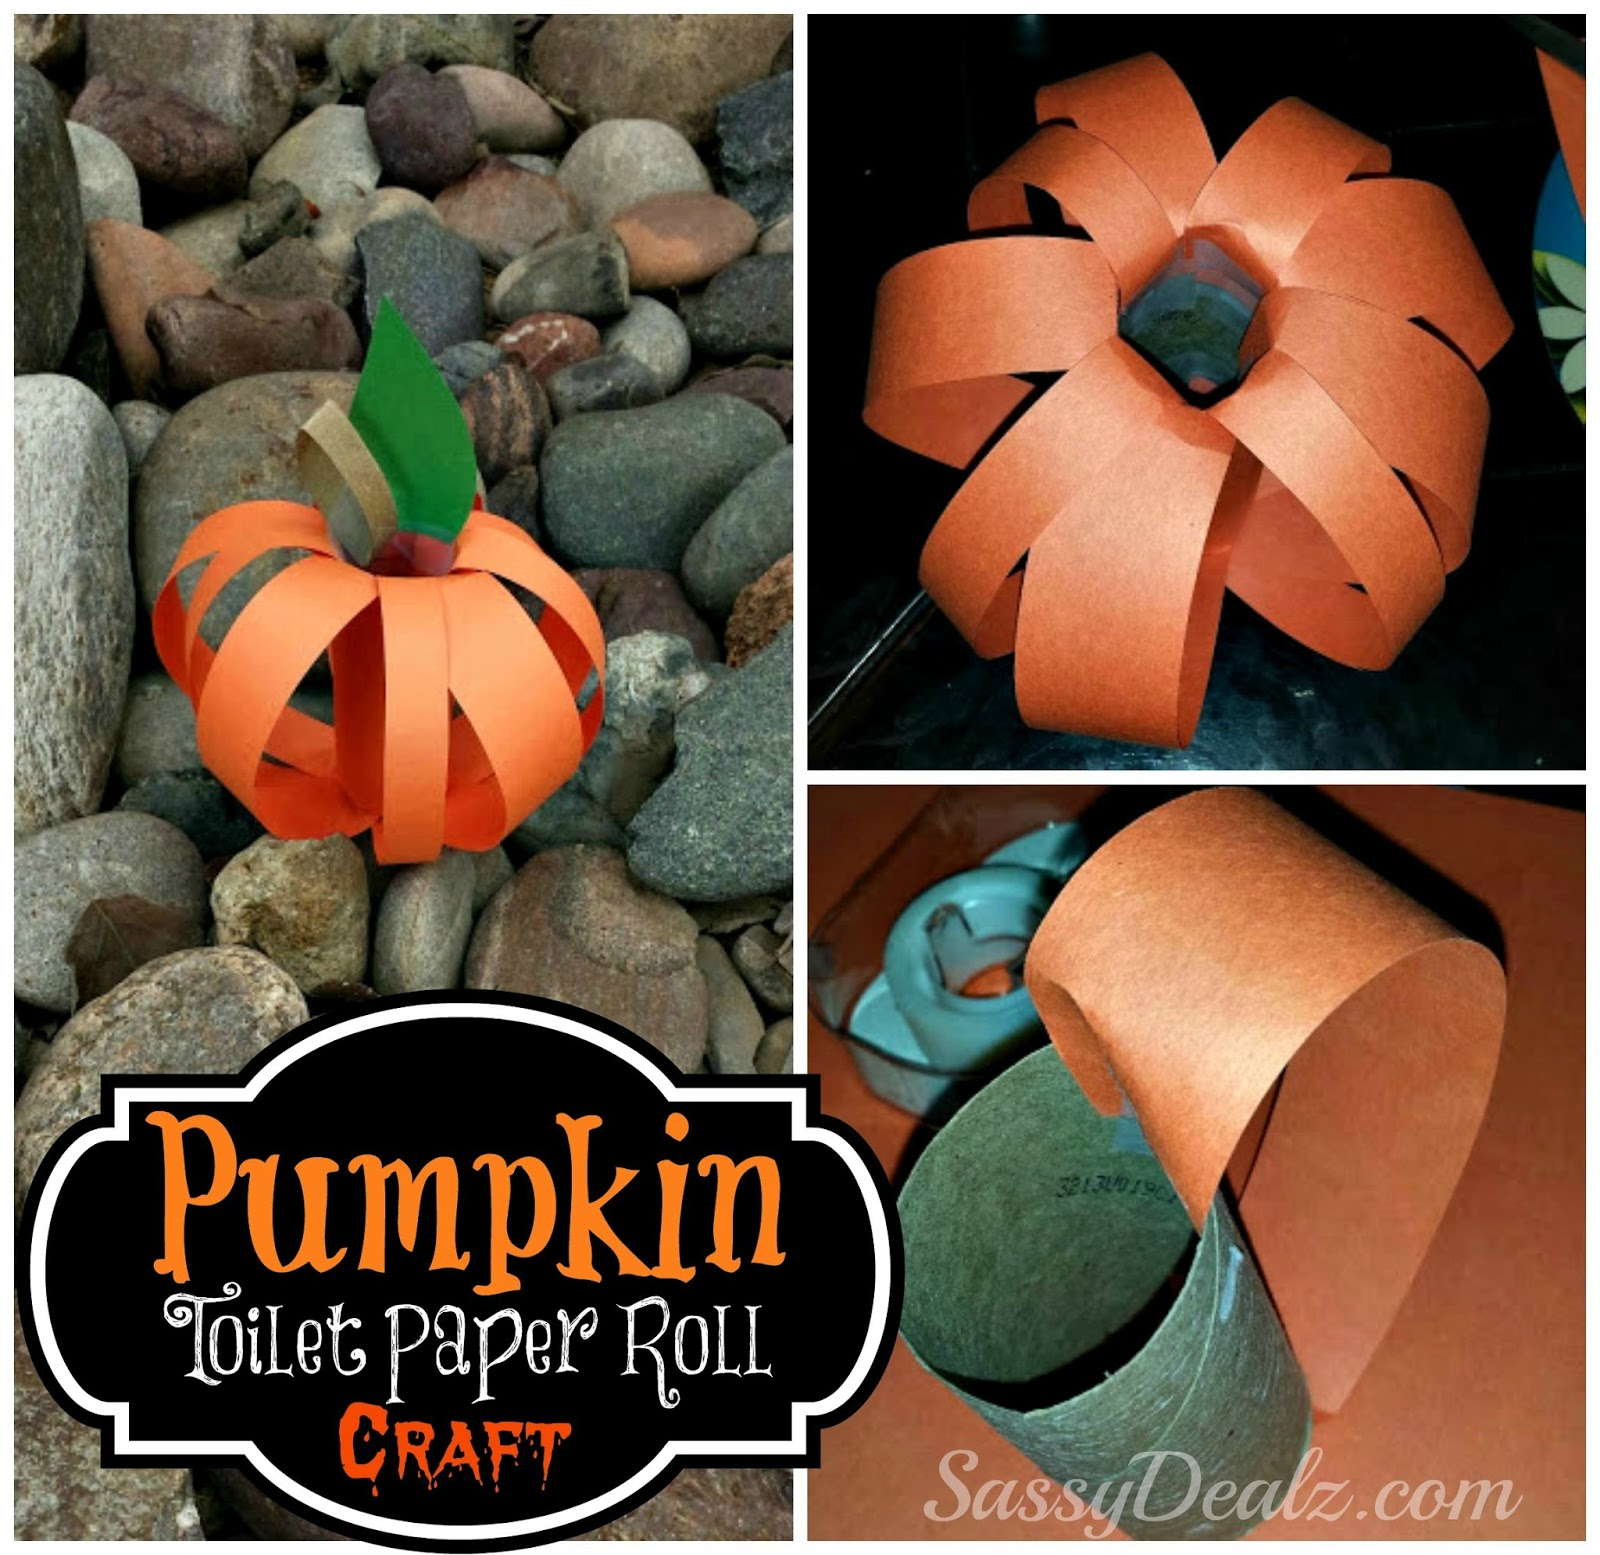 Pumpkin Craft Ideas For Kids Part - 43: Pumpkin Toilet Paper Roll Craft